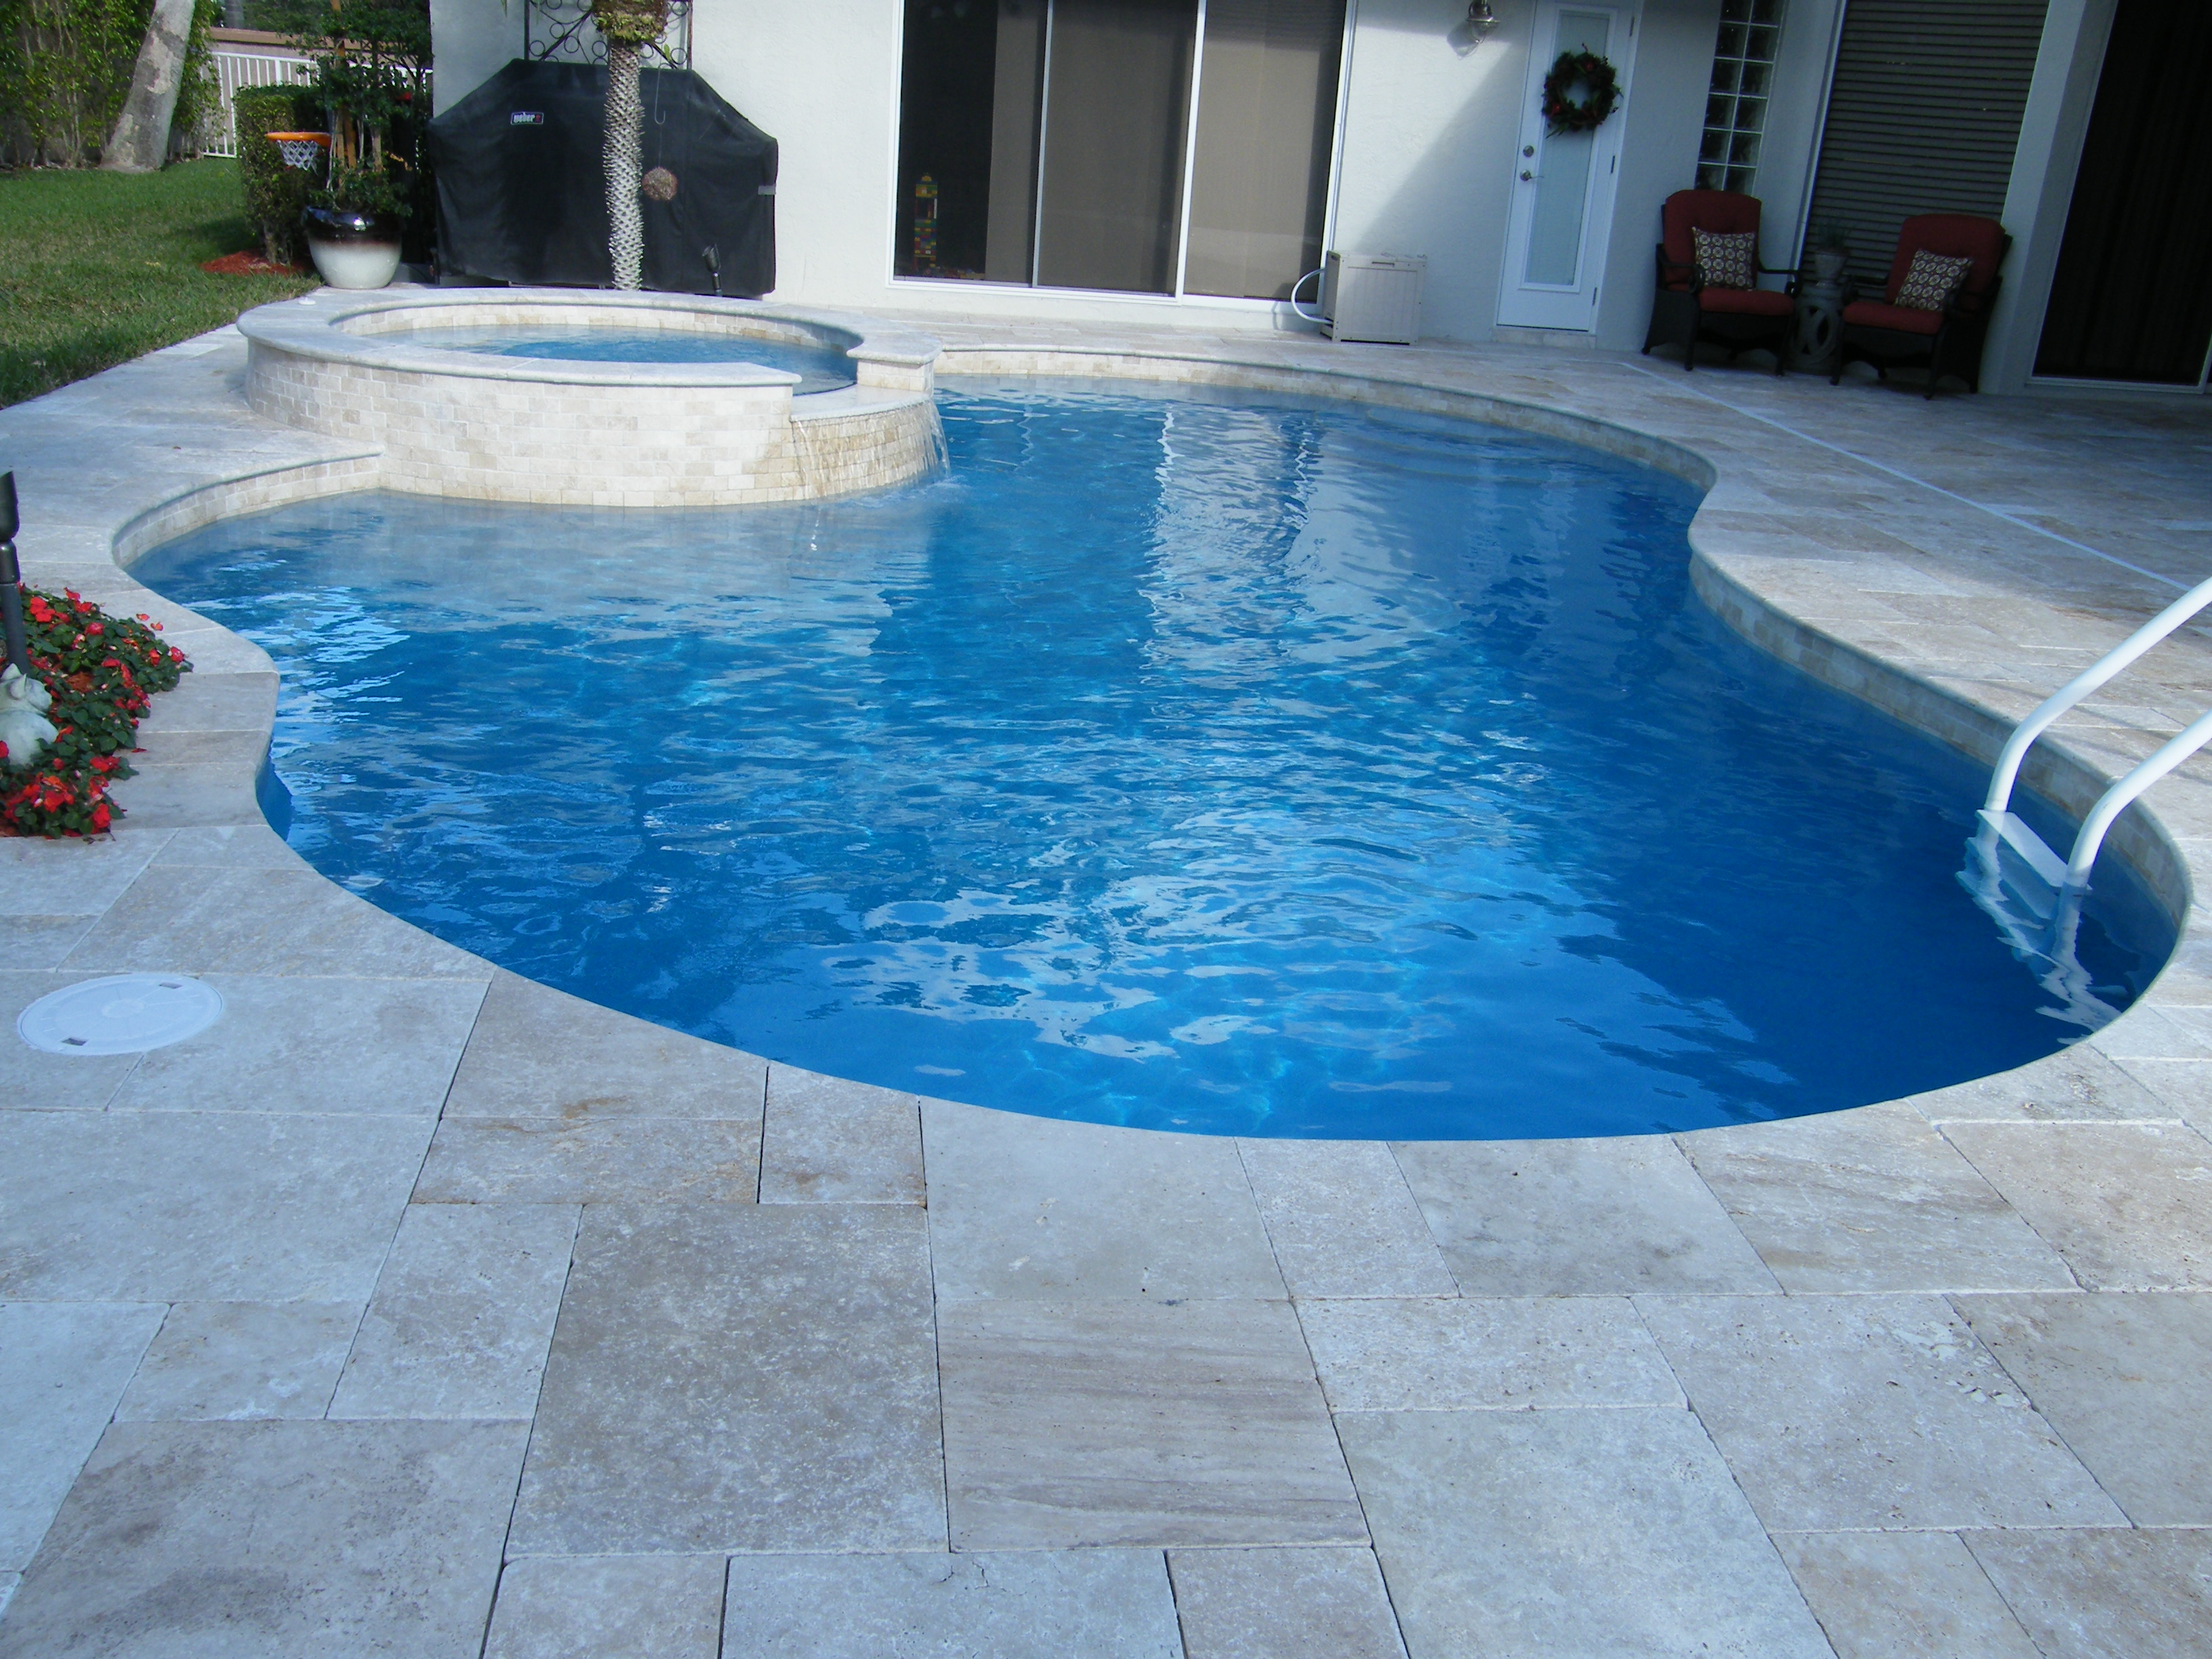 17 best images about tile and stone for swimming pools on, Gartengerate ideen